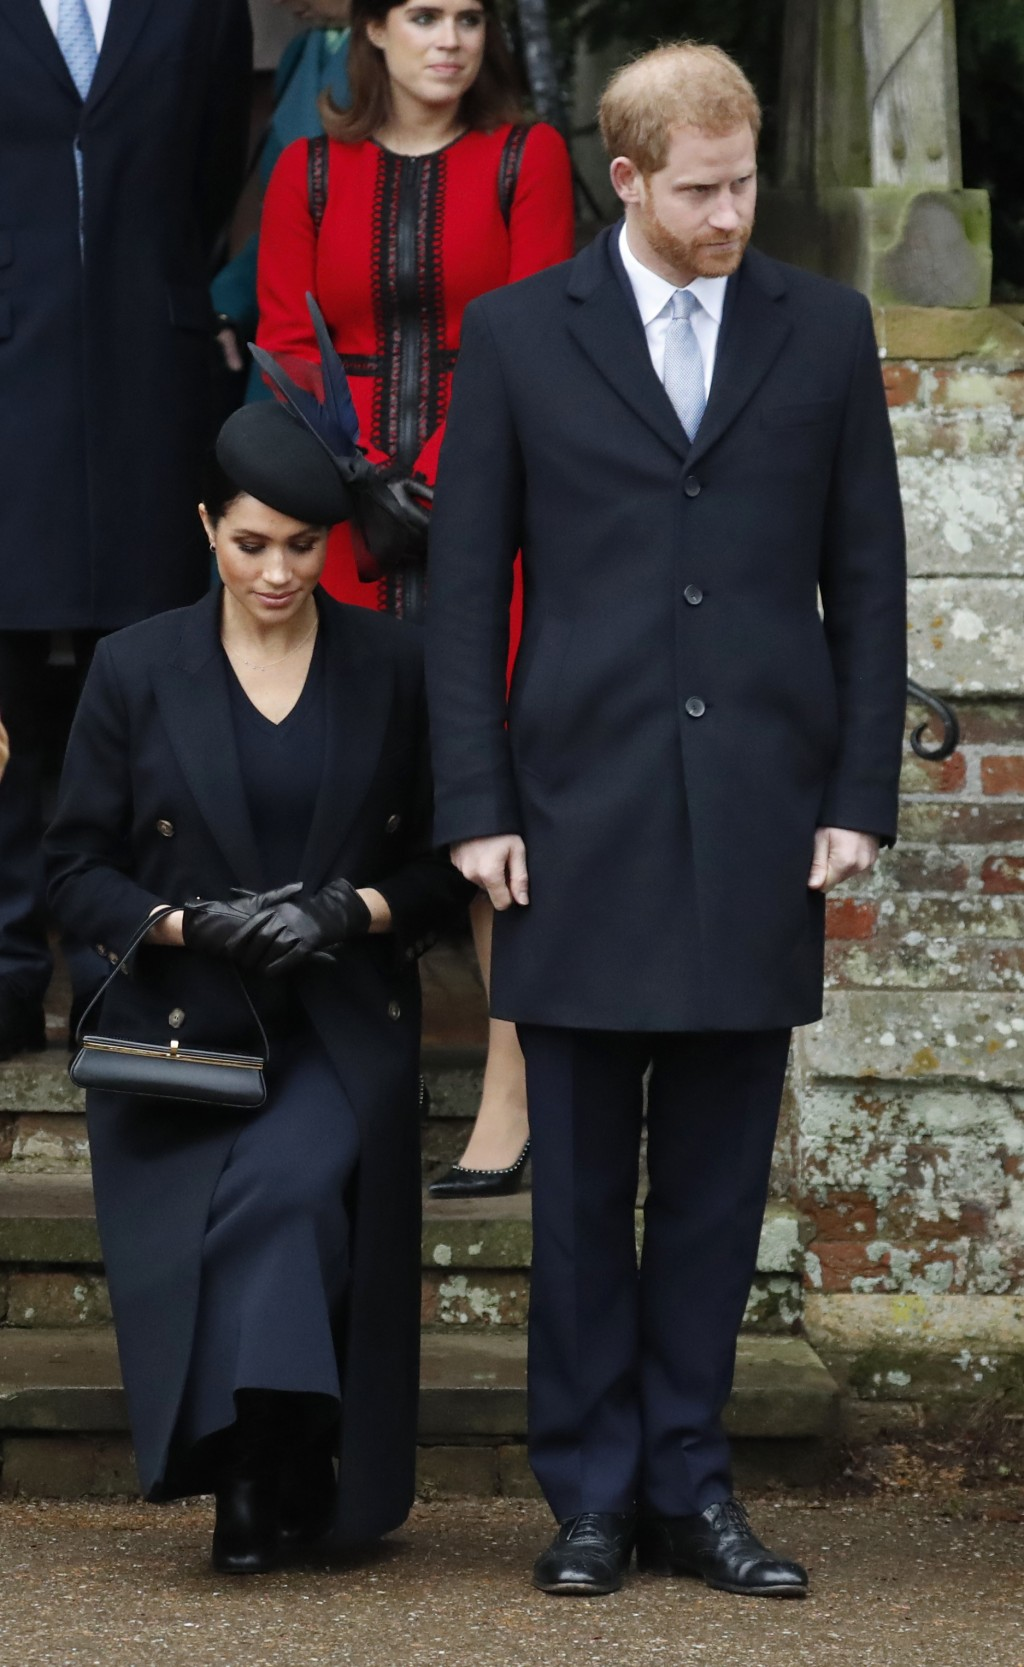 FILE - In this Tuesday, Dec. 25, 2018 file photo, Britain's Prince Harry, stands as Meghan, Duchess of Sussex curtsies to Britain's Queen Elizabeth II